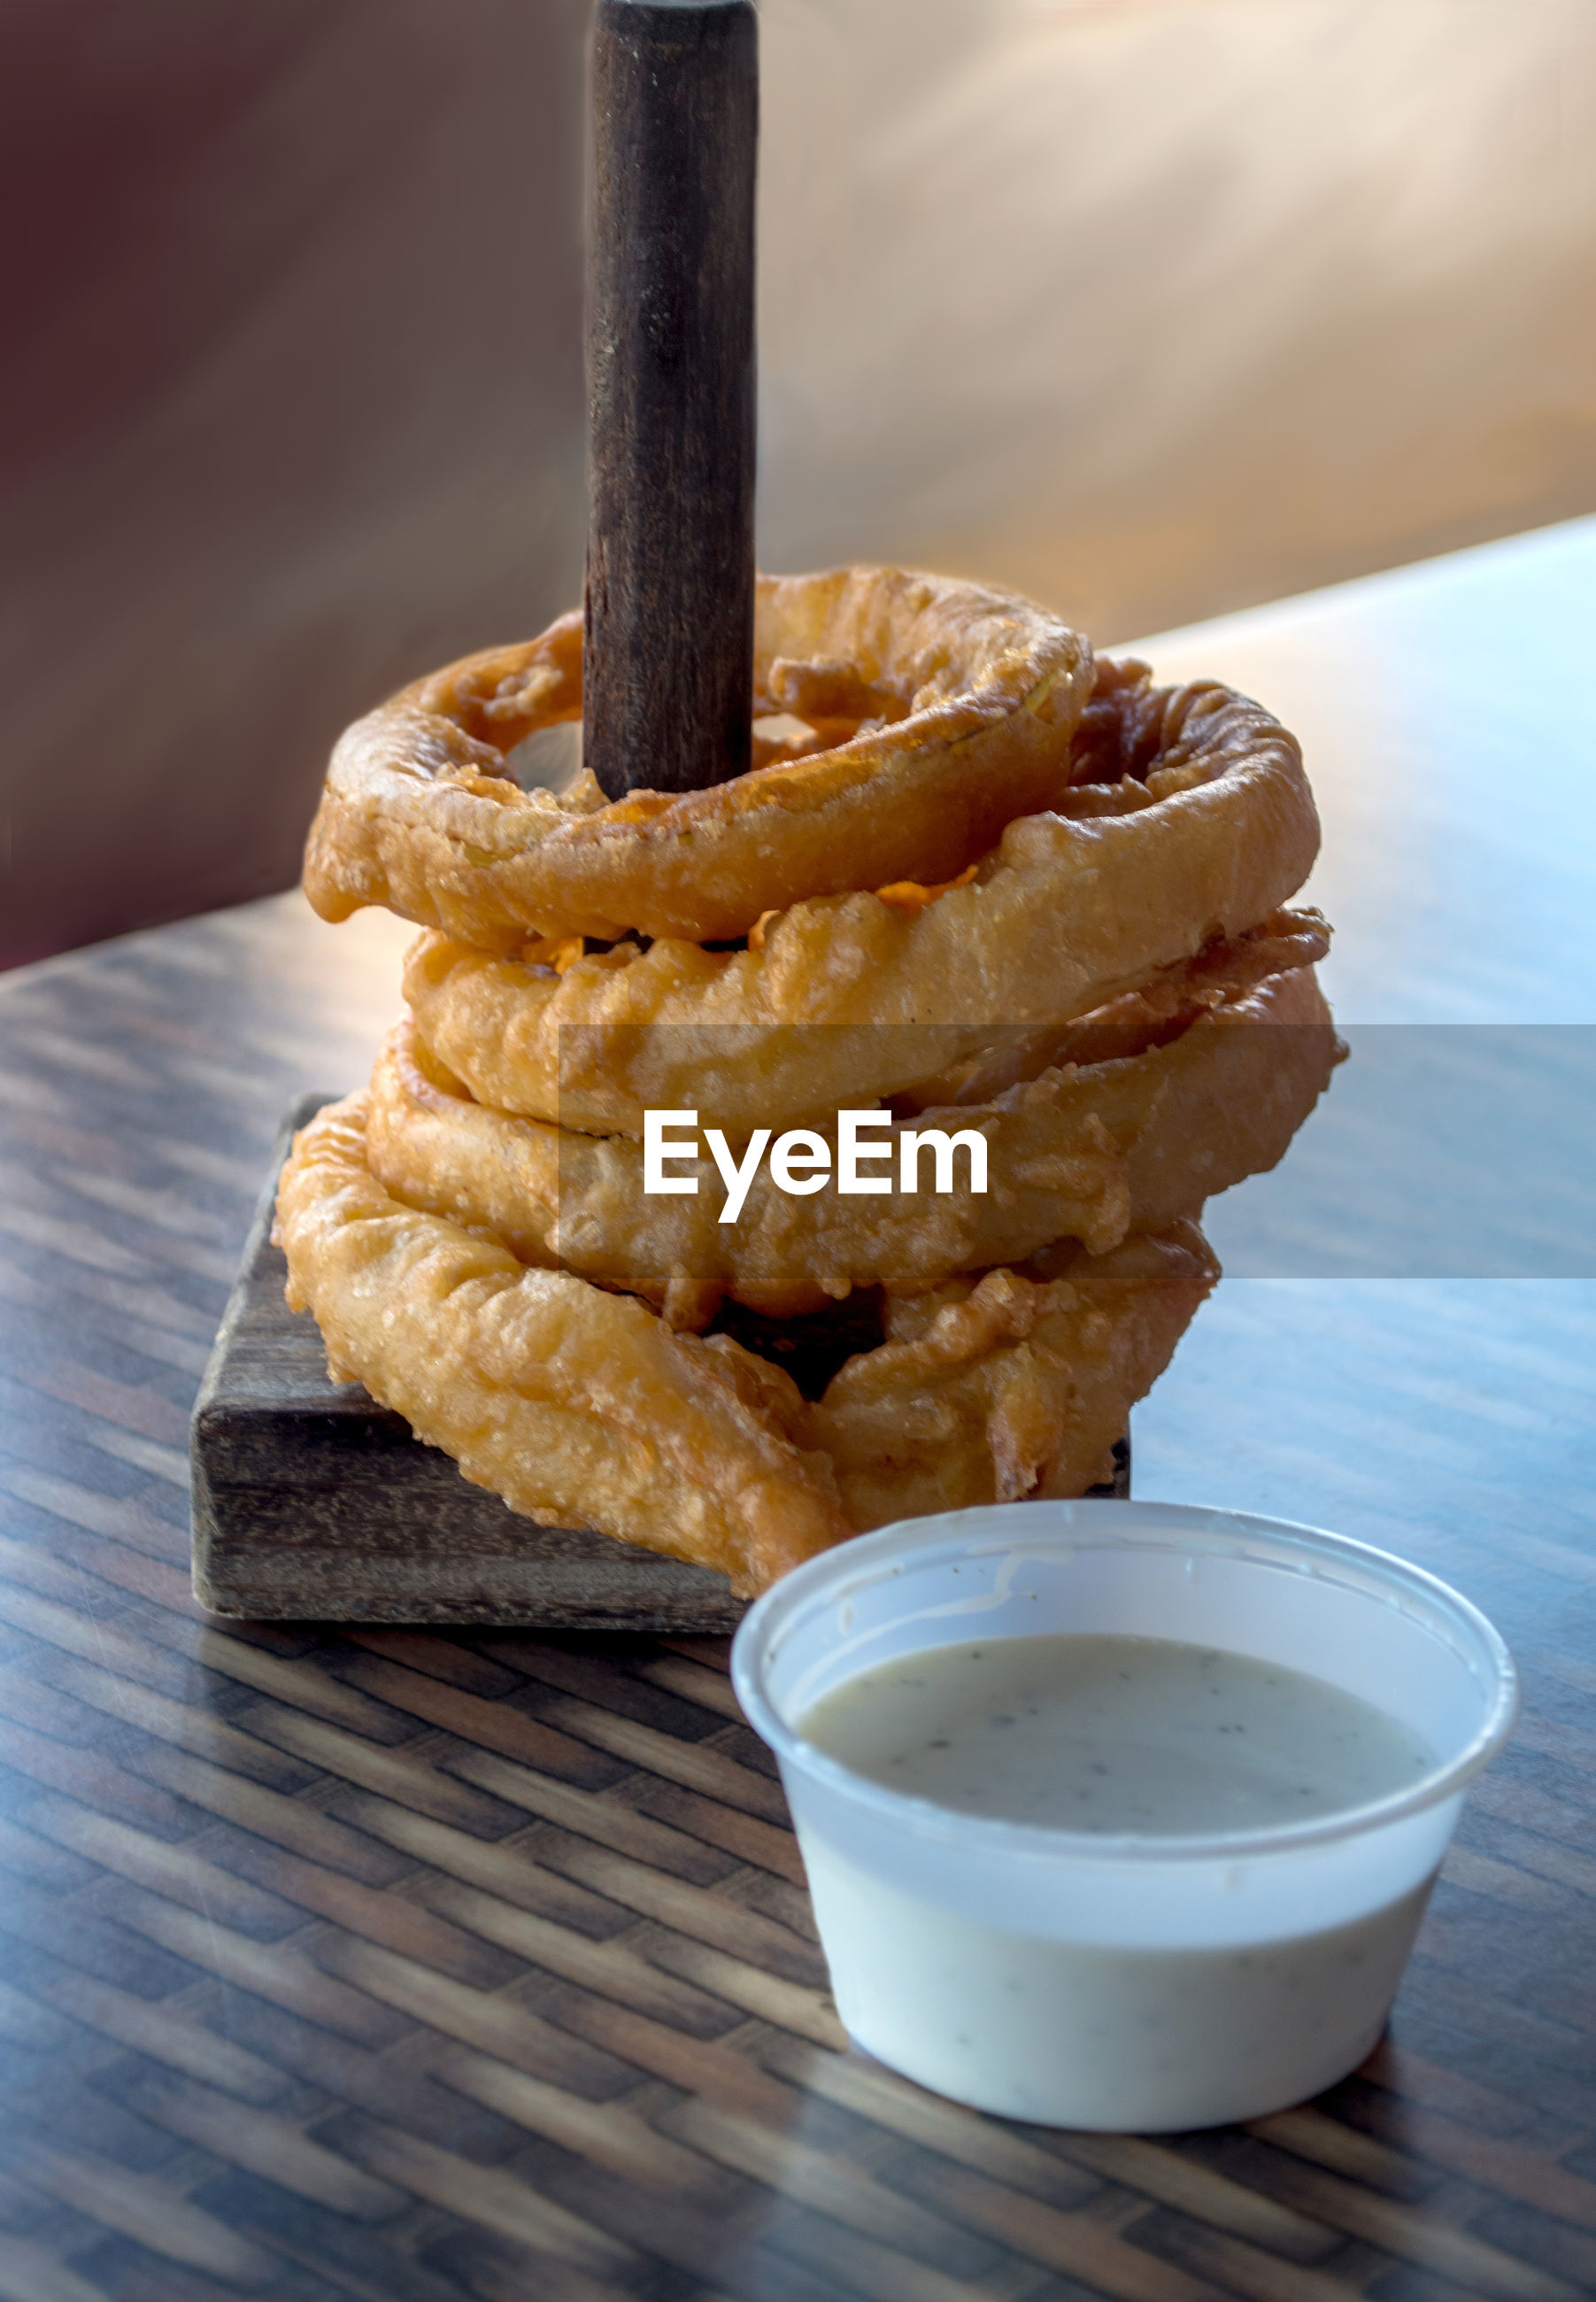 Stack of crispy, deep fried onion rings served on a spool with dipping sauce